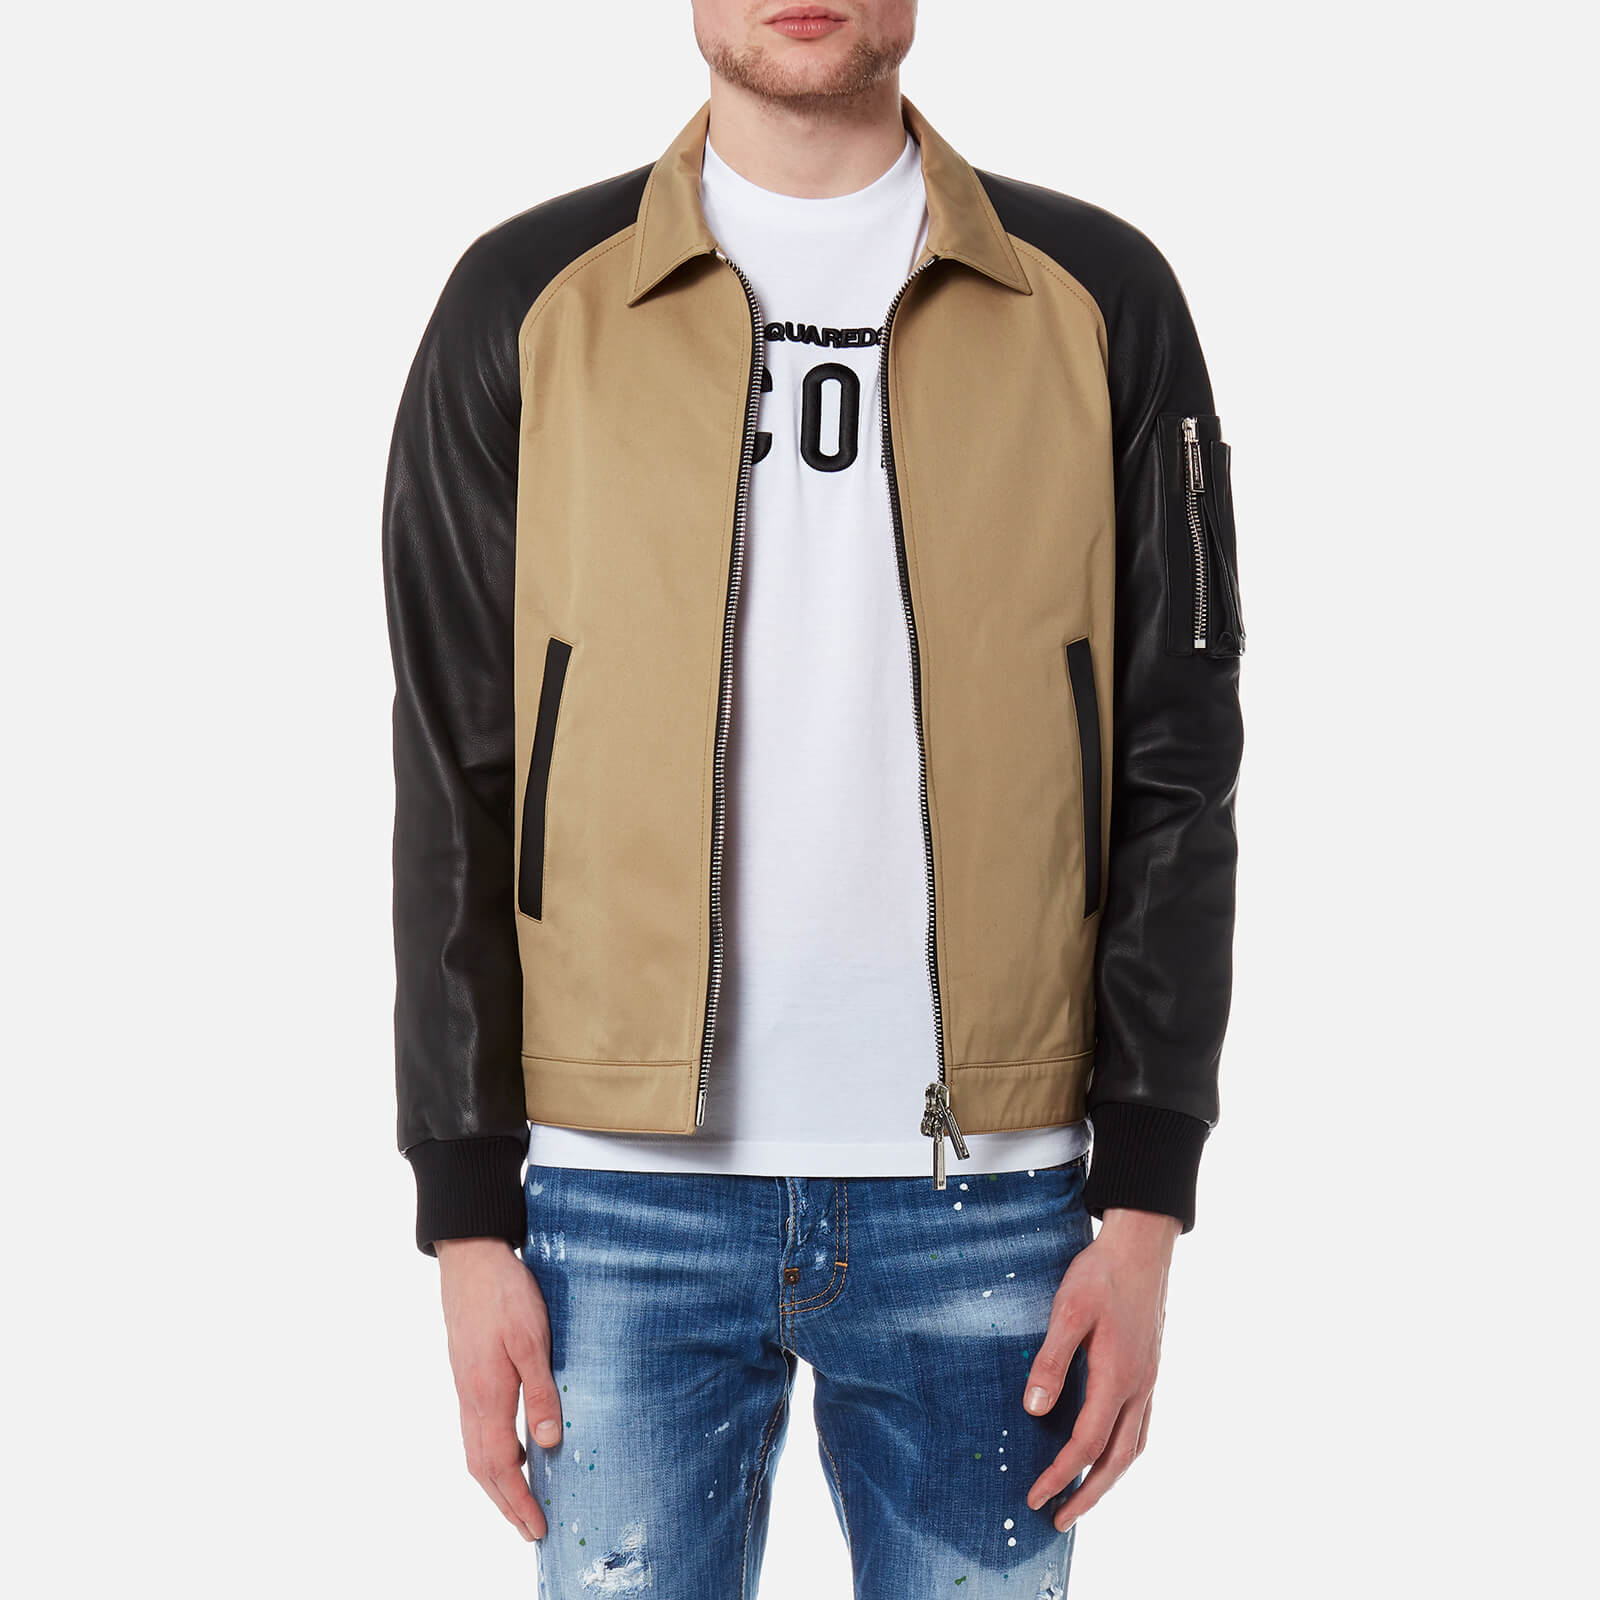 7f3df74e7a5 Dsquared2 Men s 50 s Bomber Jacket with Raglan Leather Sleeves - Kaky -  Free UK Delivery over £50